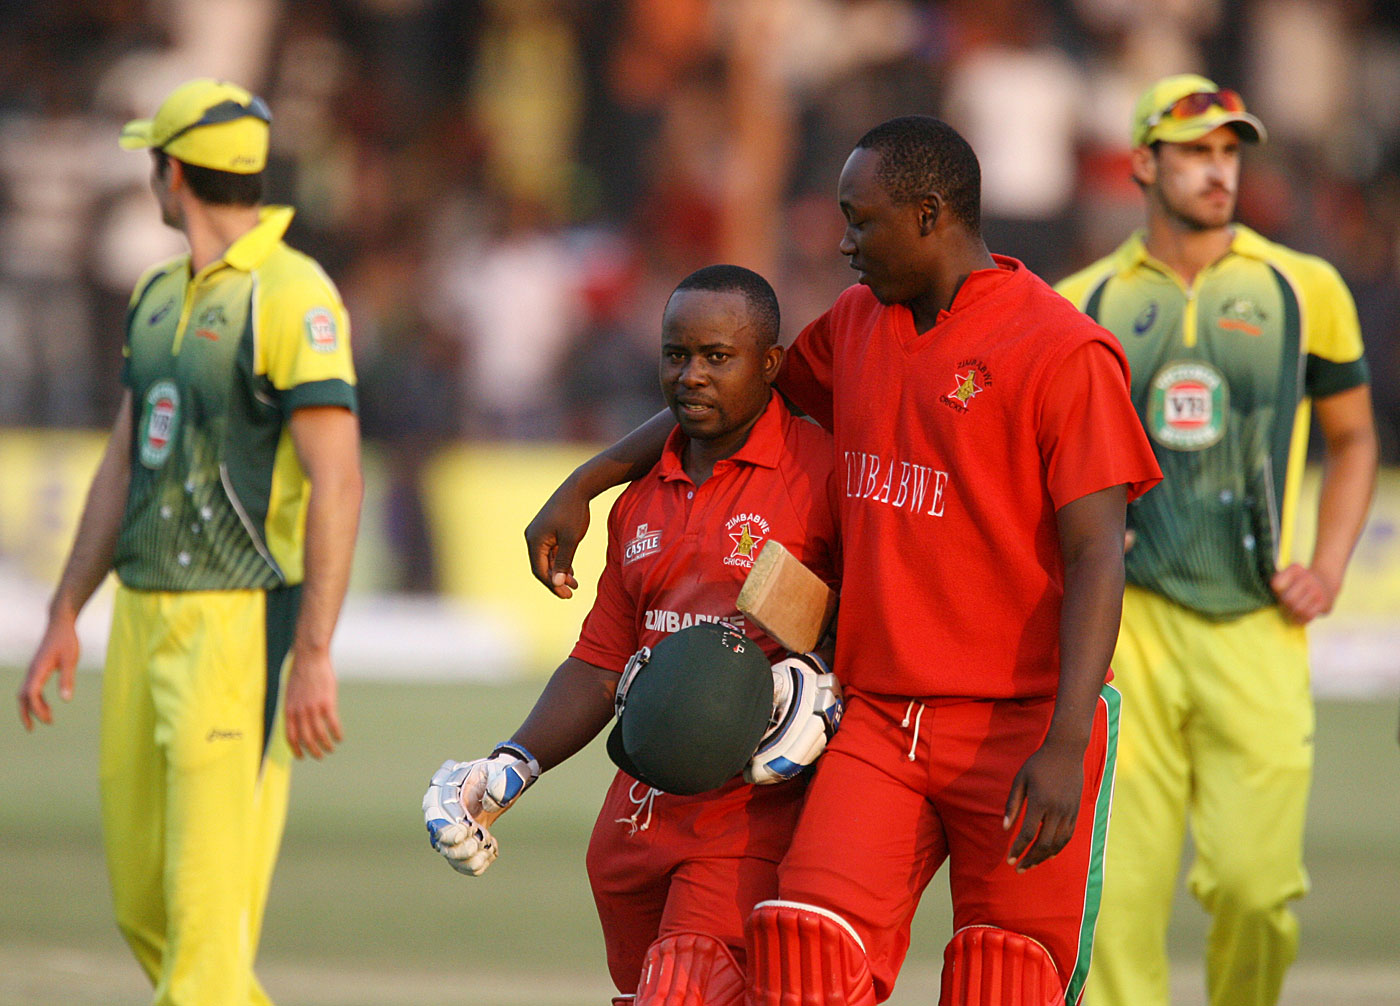 Utseya says that players have taken to forming groups within the Zimbabwe team